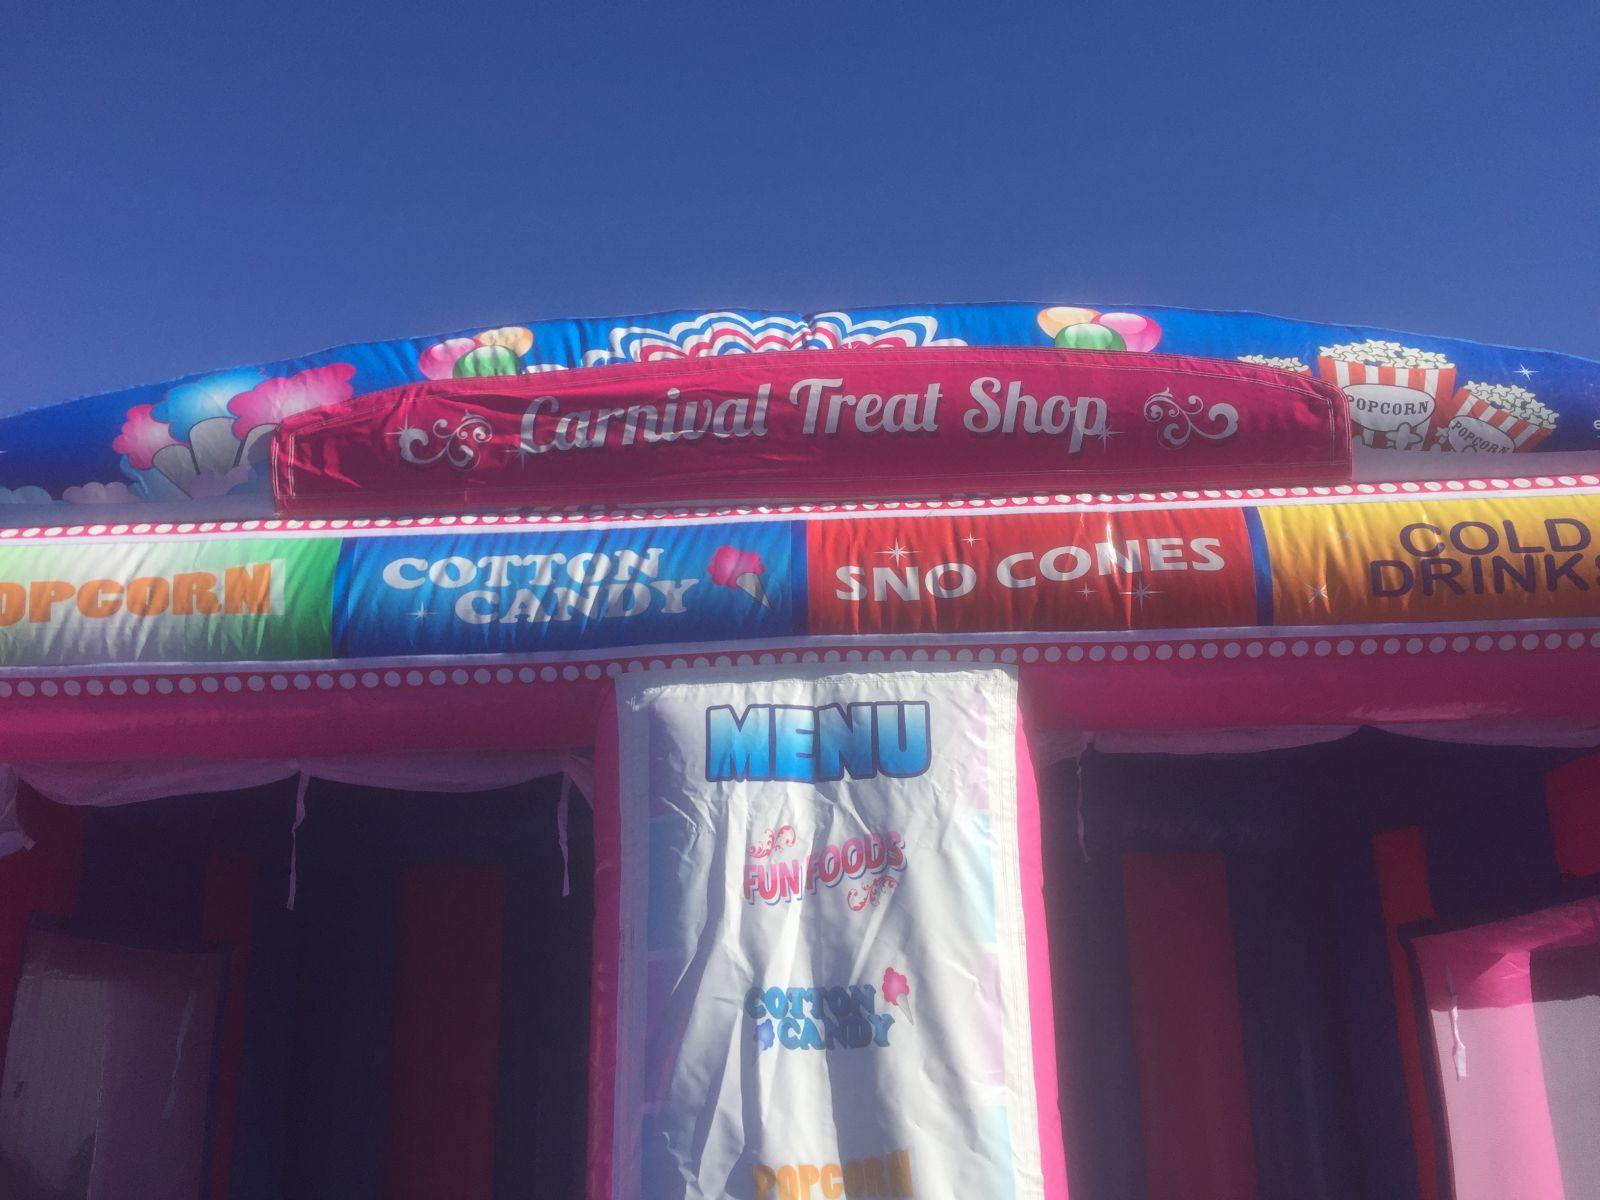 Carnival Treat Shop Fun Food Concession Stand Bounce House